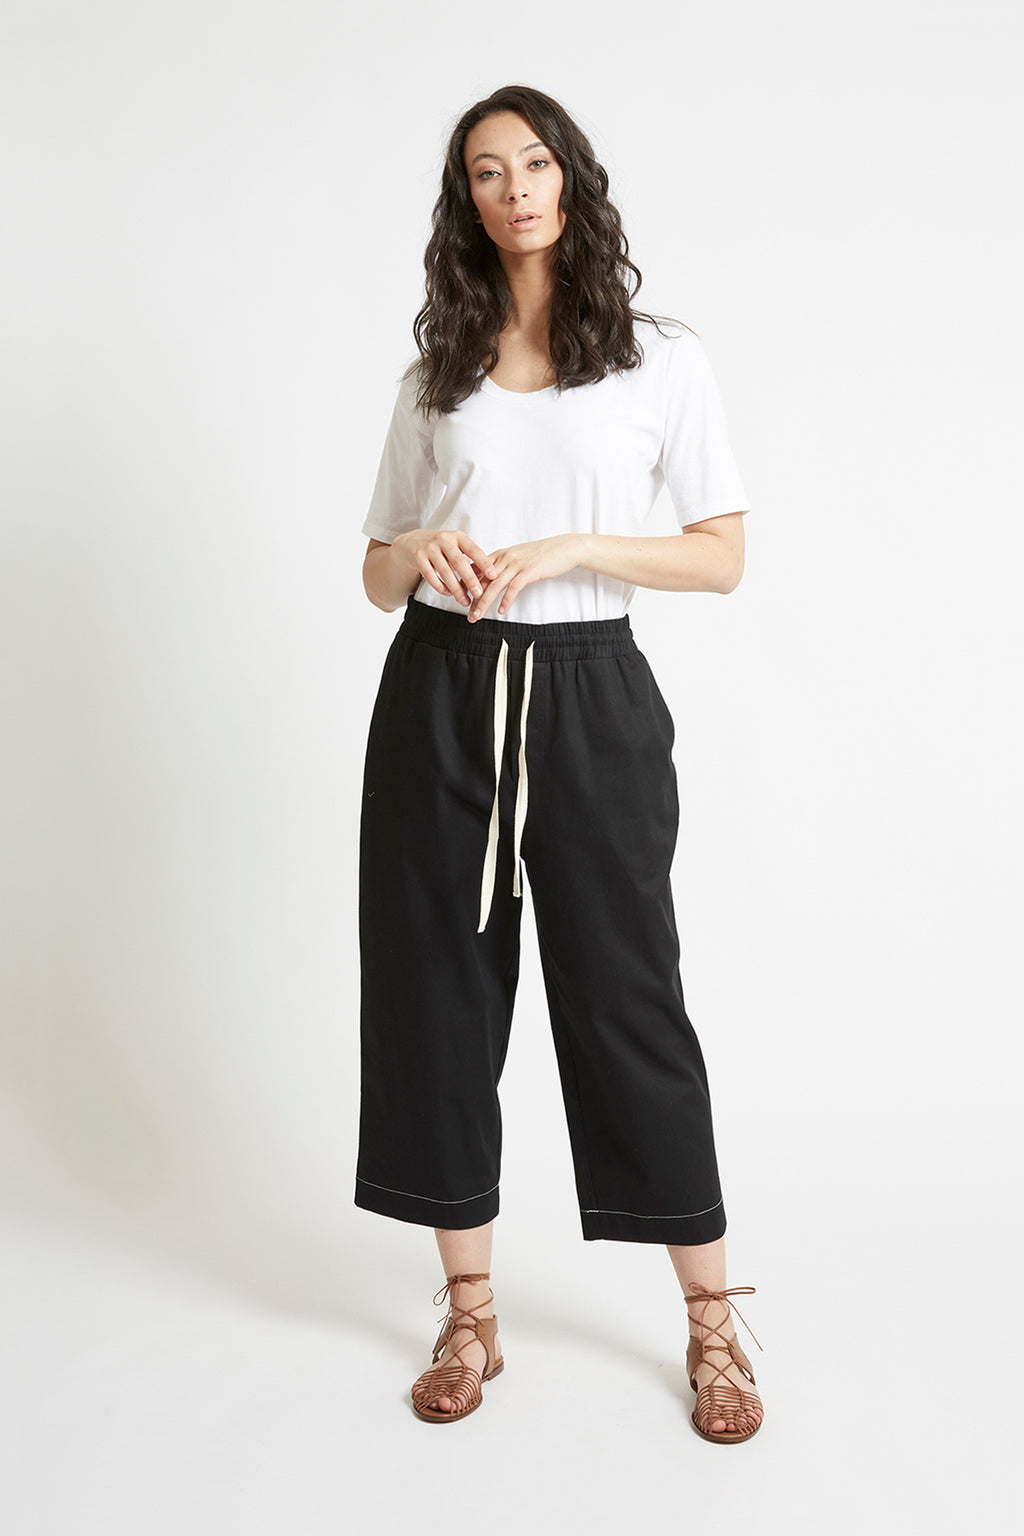 Black Cotton Tapered Pant Pants Ethical Sustainable Vegan Organic Australian fashion womens clothes